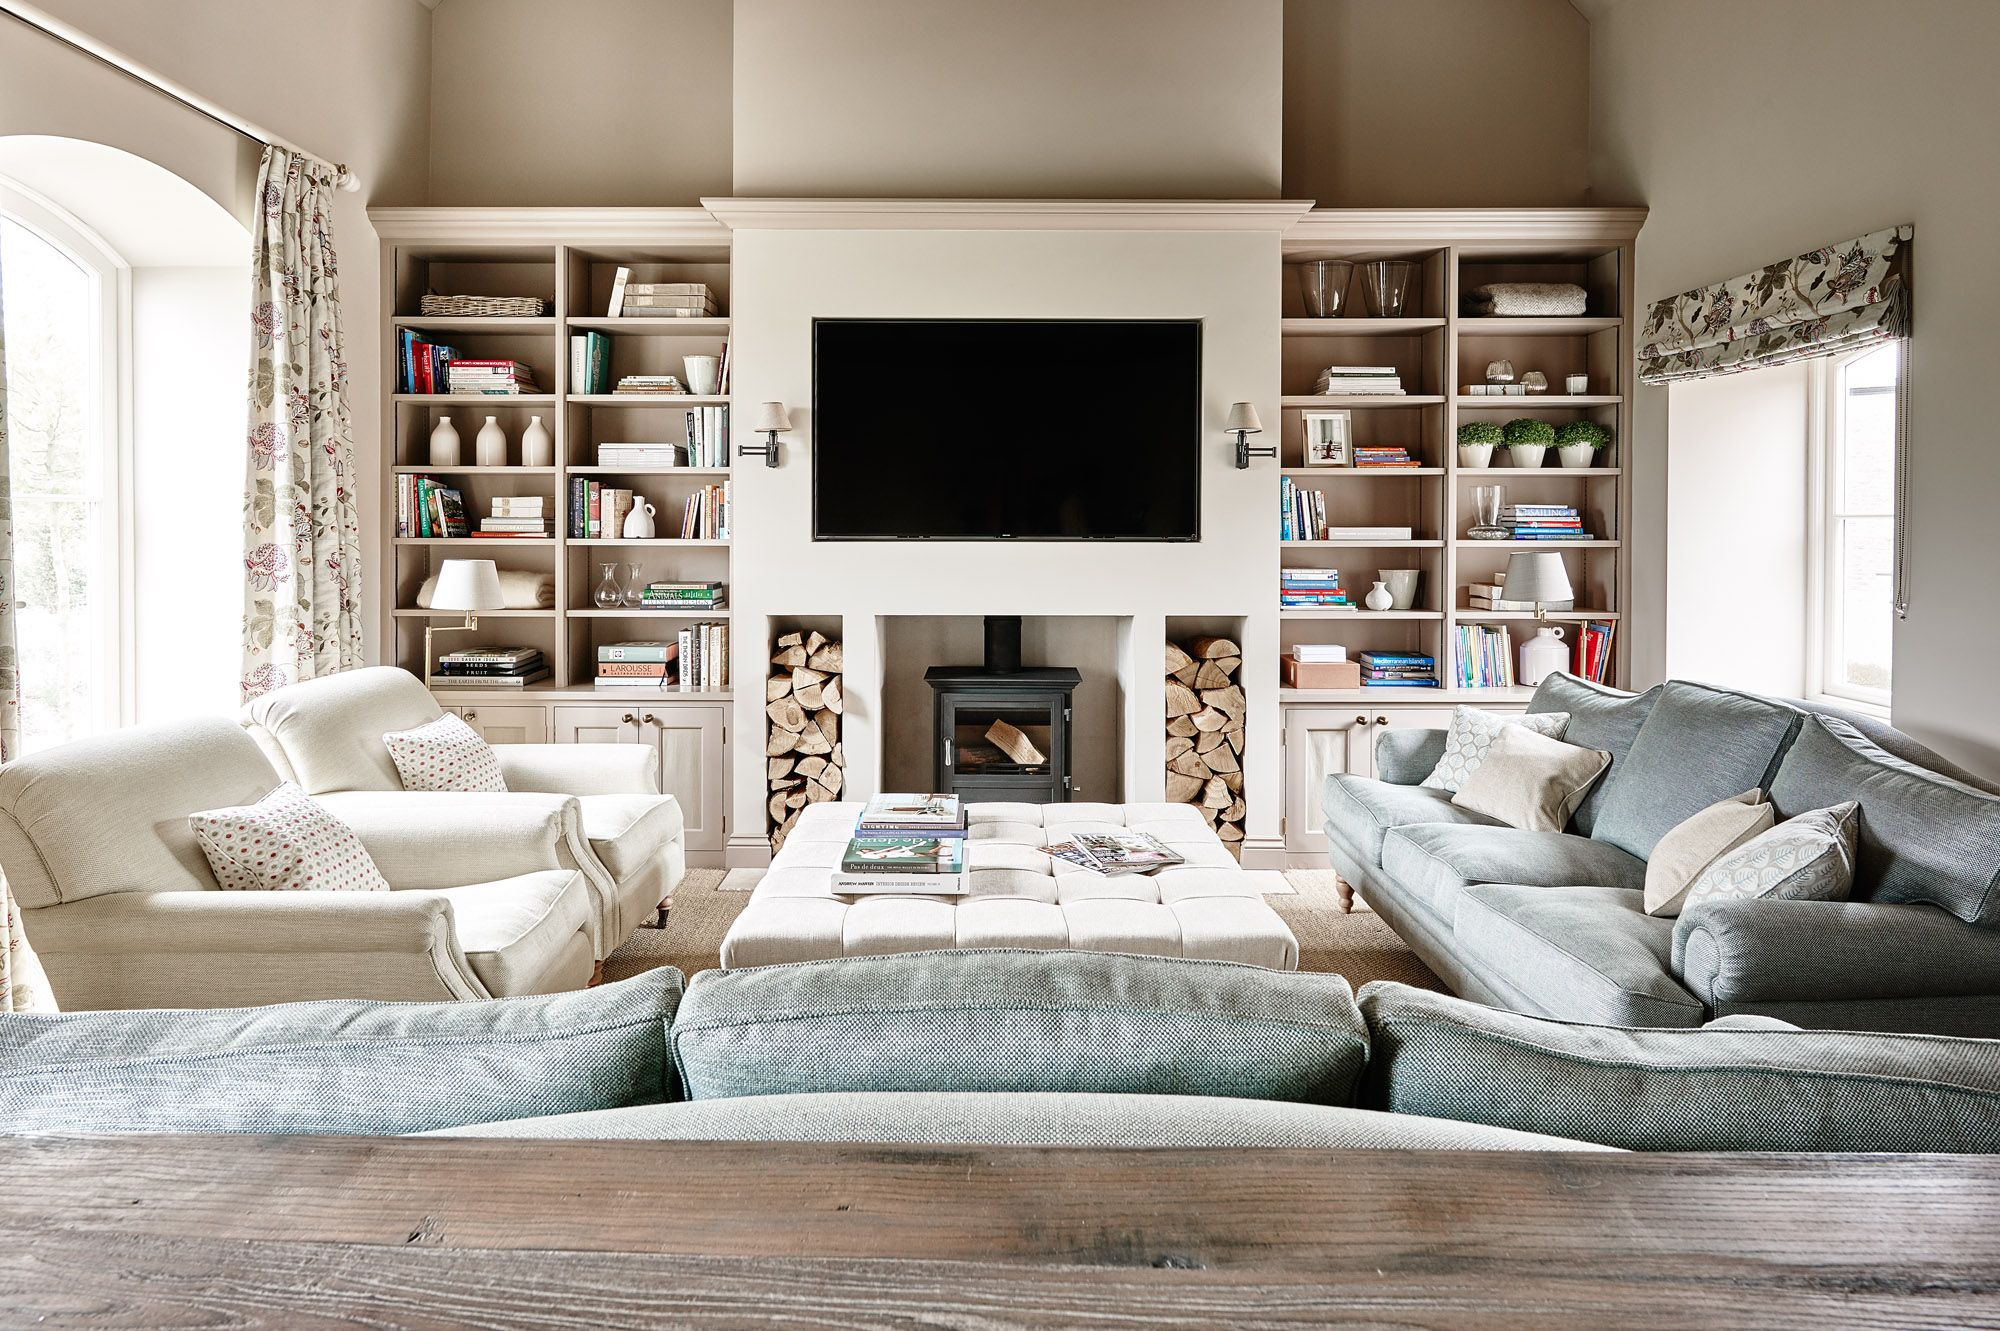 living room designs with wood stove the most beautiful in world built into fireplace decorating pinterest